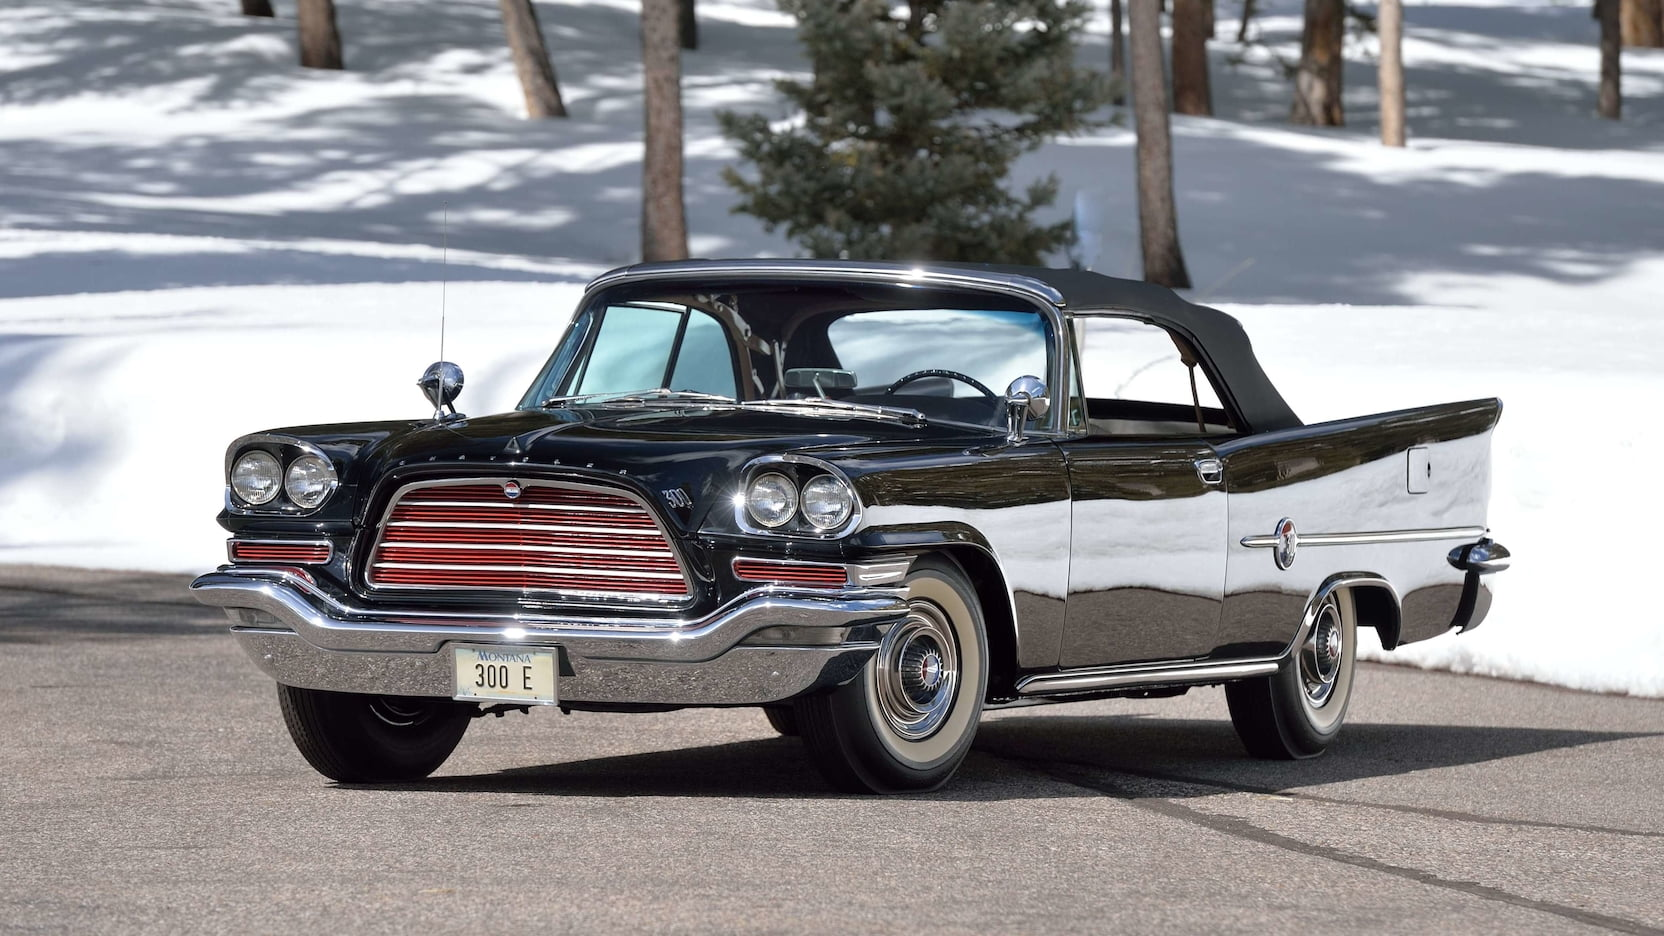 1959 Chrysler 300E Convertible